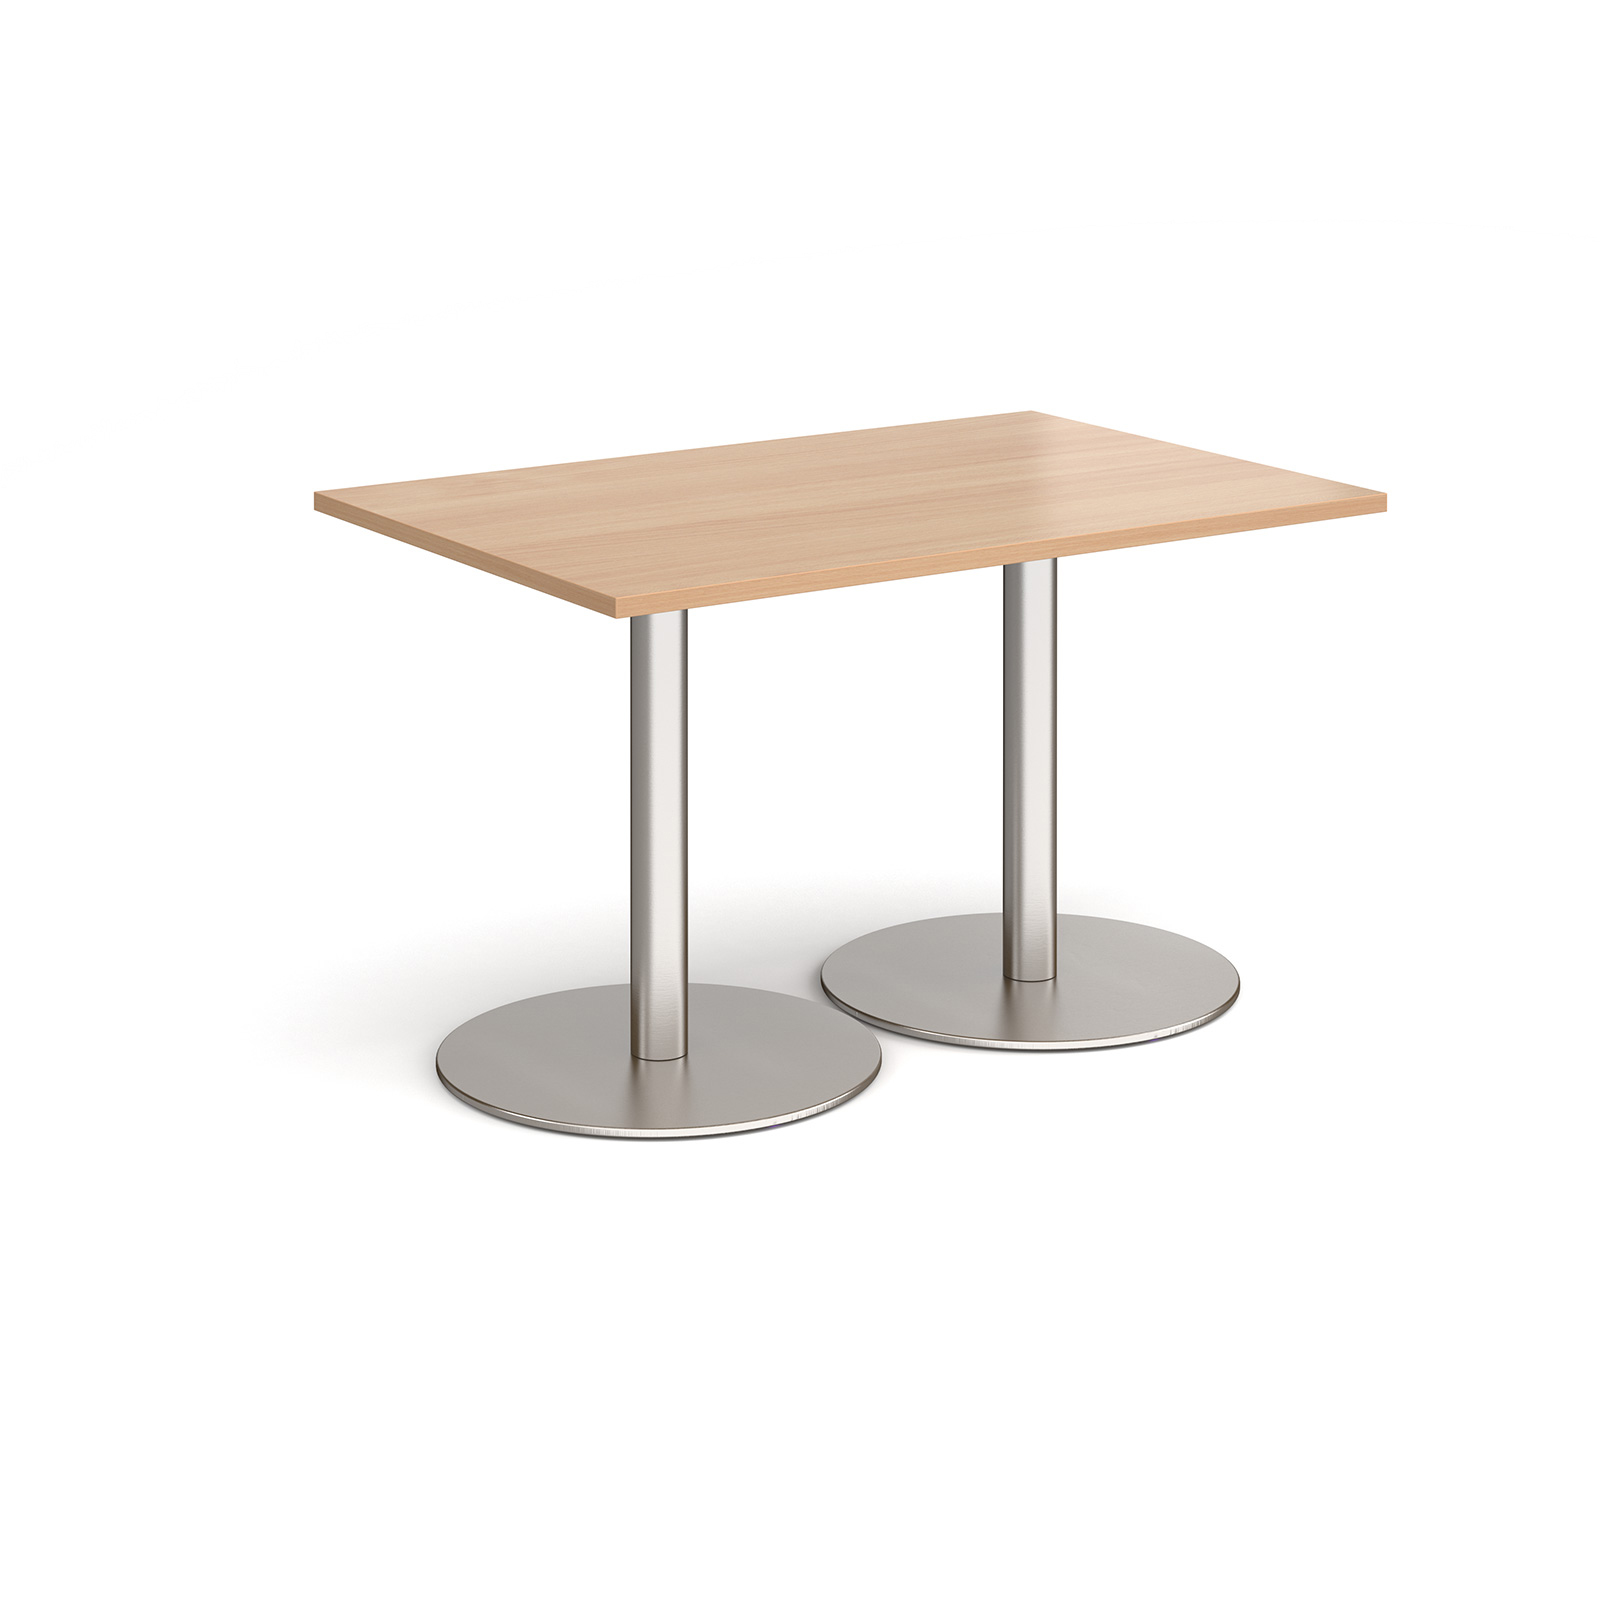 Canteen / Dining Monza rectangular dining table with flat round bases